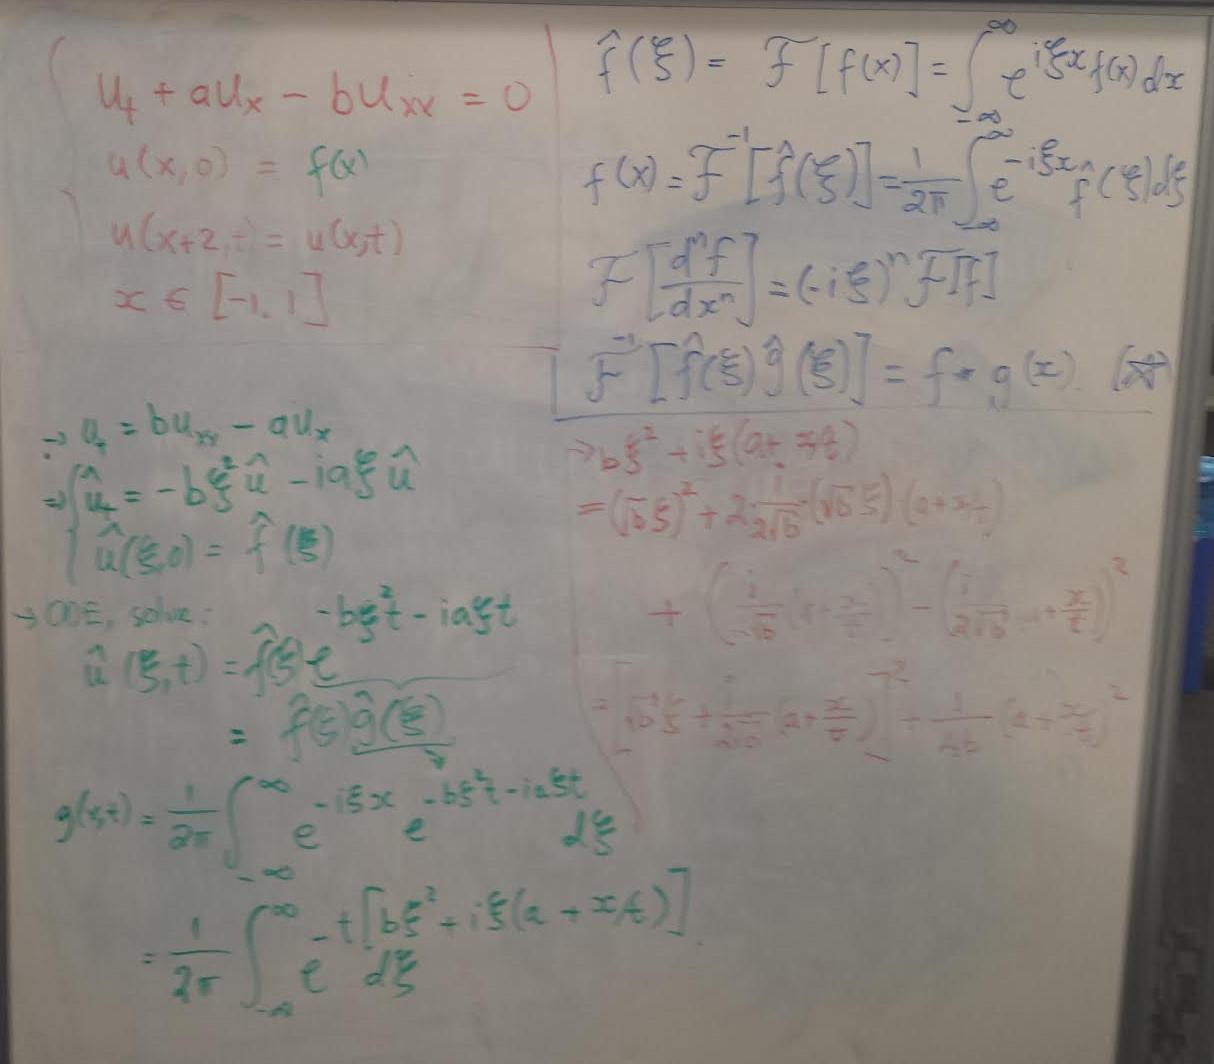 fourier series transforms and boundary value problems solutions manual